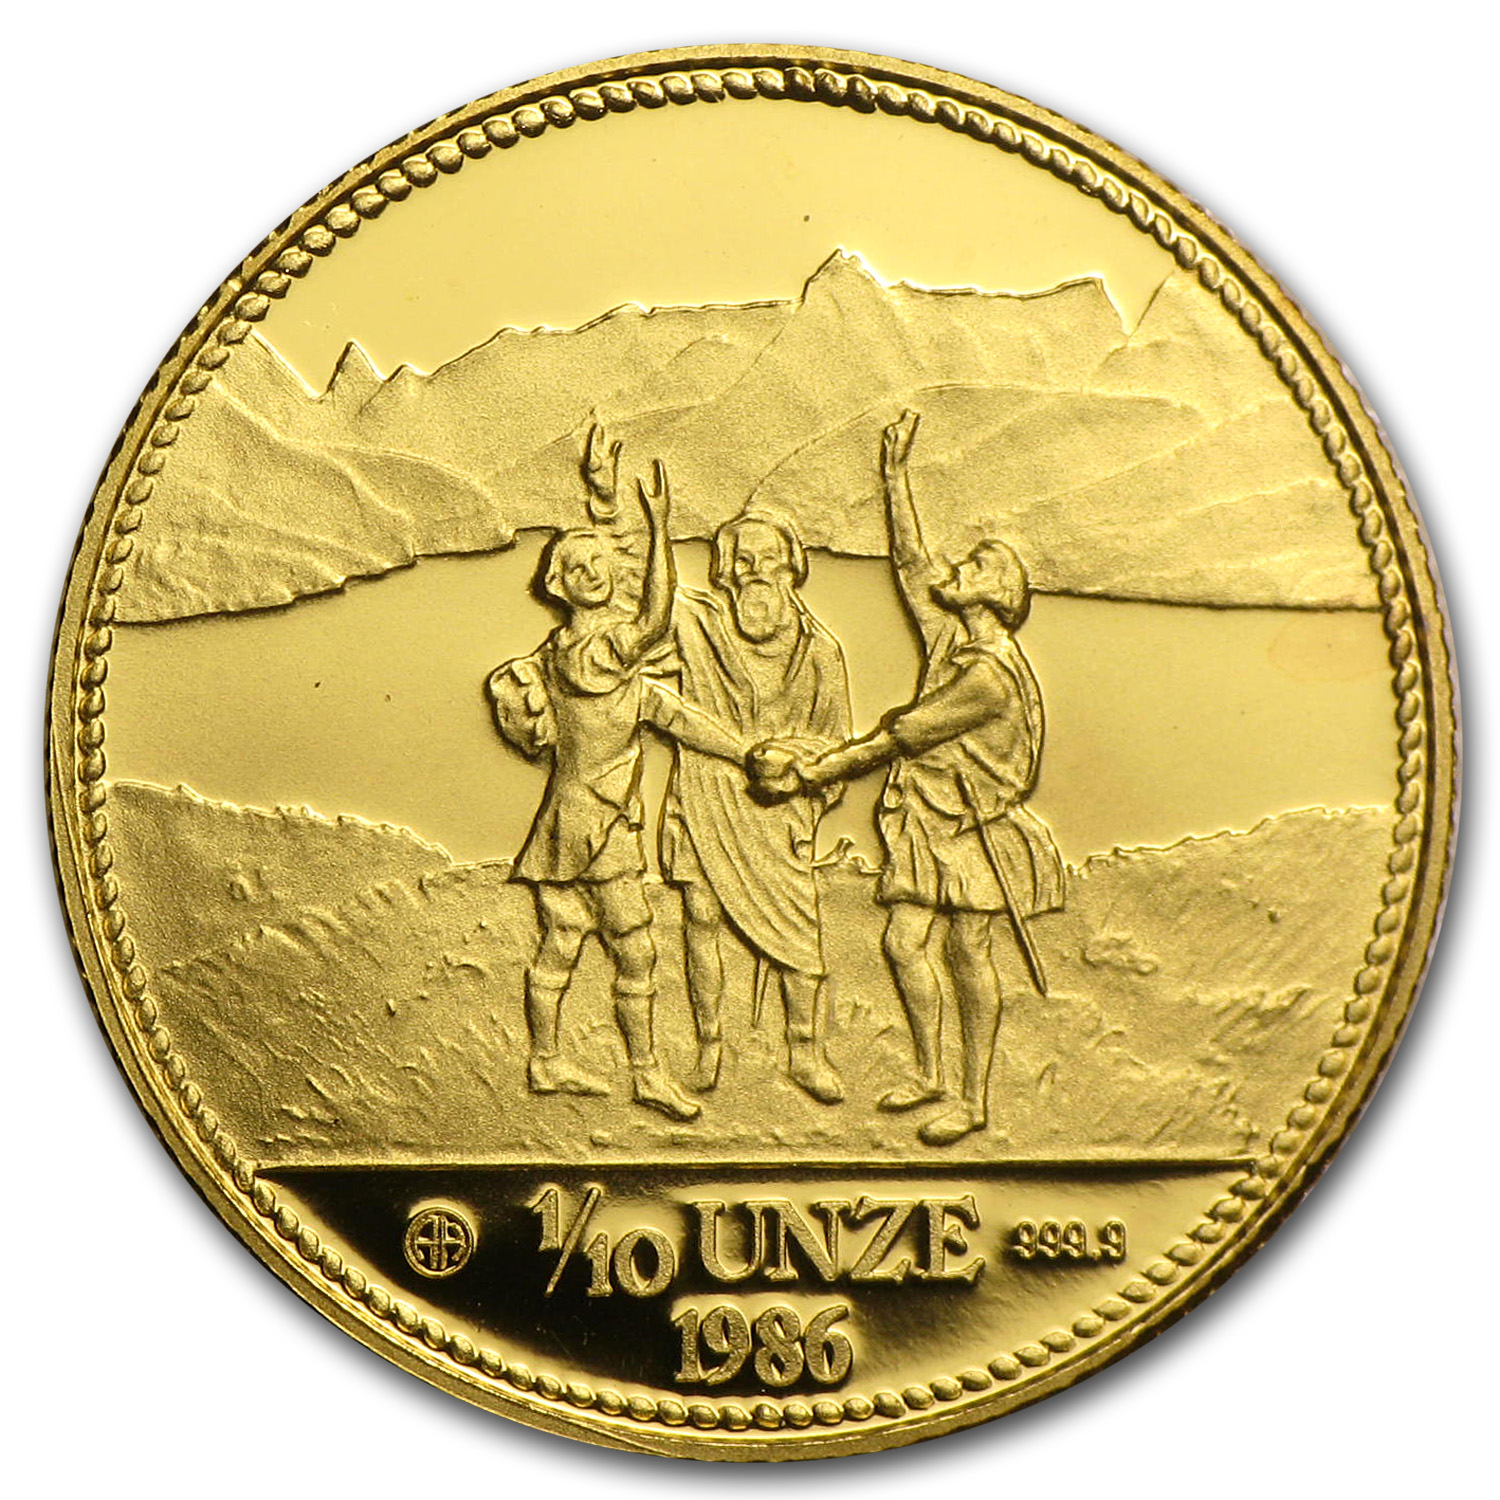 Switzerland 1986-1989 1/10 Unze 999.9 Gold